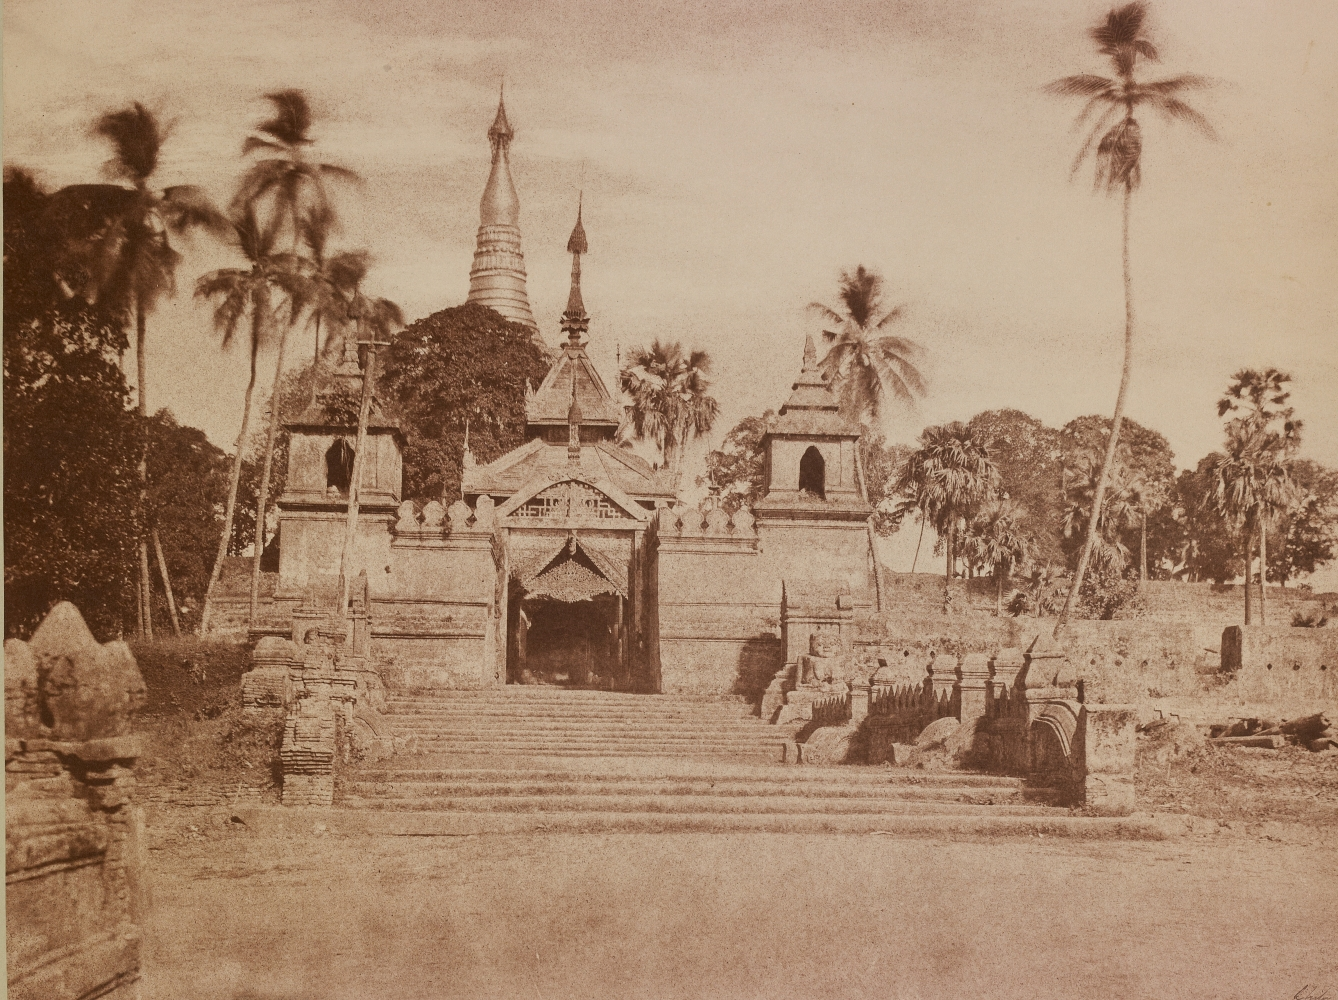 """Captain Linnaeus TRIPE (English, 1822-1902) """"No. 108. Rangoon. South Entrance of Shwe Dagon Pagoda."""" Burma, 1855 Albumenized salt print from a waxed paper negative 25.9 x 34.3 cm mounted on 45.6 x 58.4 cm paper Signed """"L. Tripe"""" in ink. Photographer's blindstamp and printed label with plate number, title and """"The road which leads to this, is, on festival days, crowded with Burmese men, women, and children, in gay silks and muslins carrying offerings to the Pagoda."""" on mount."""